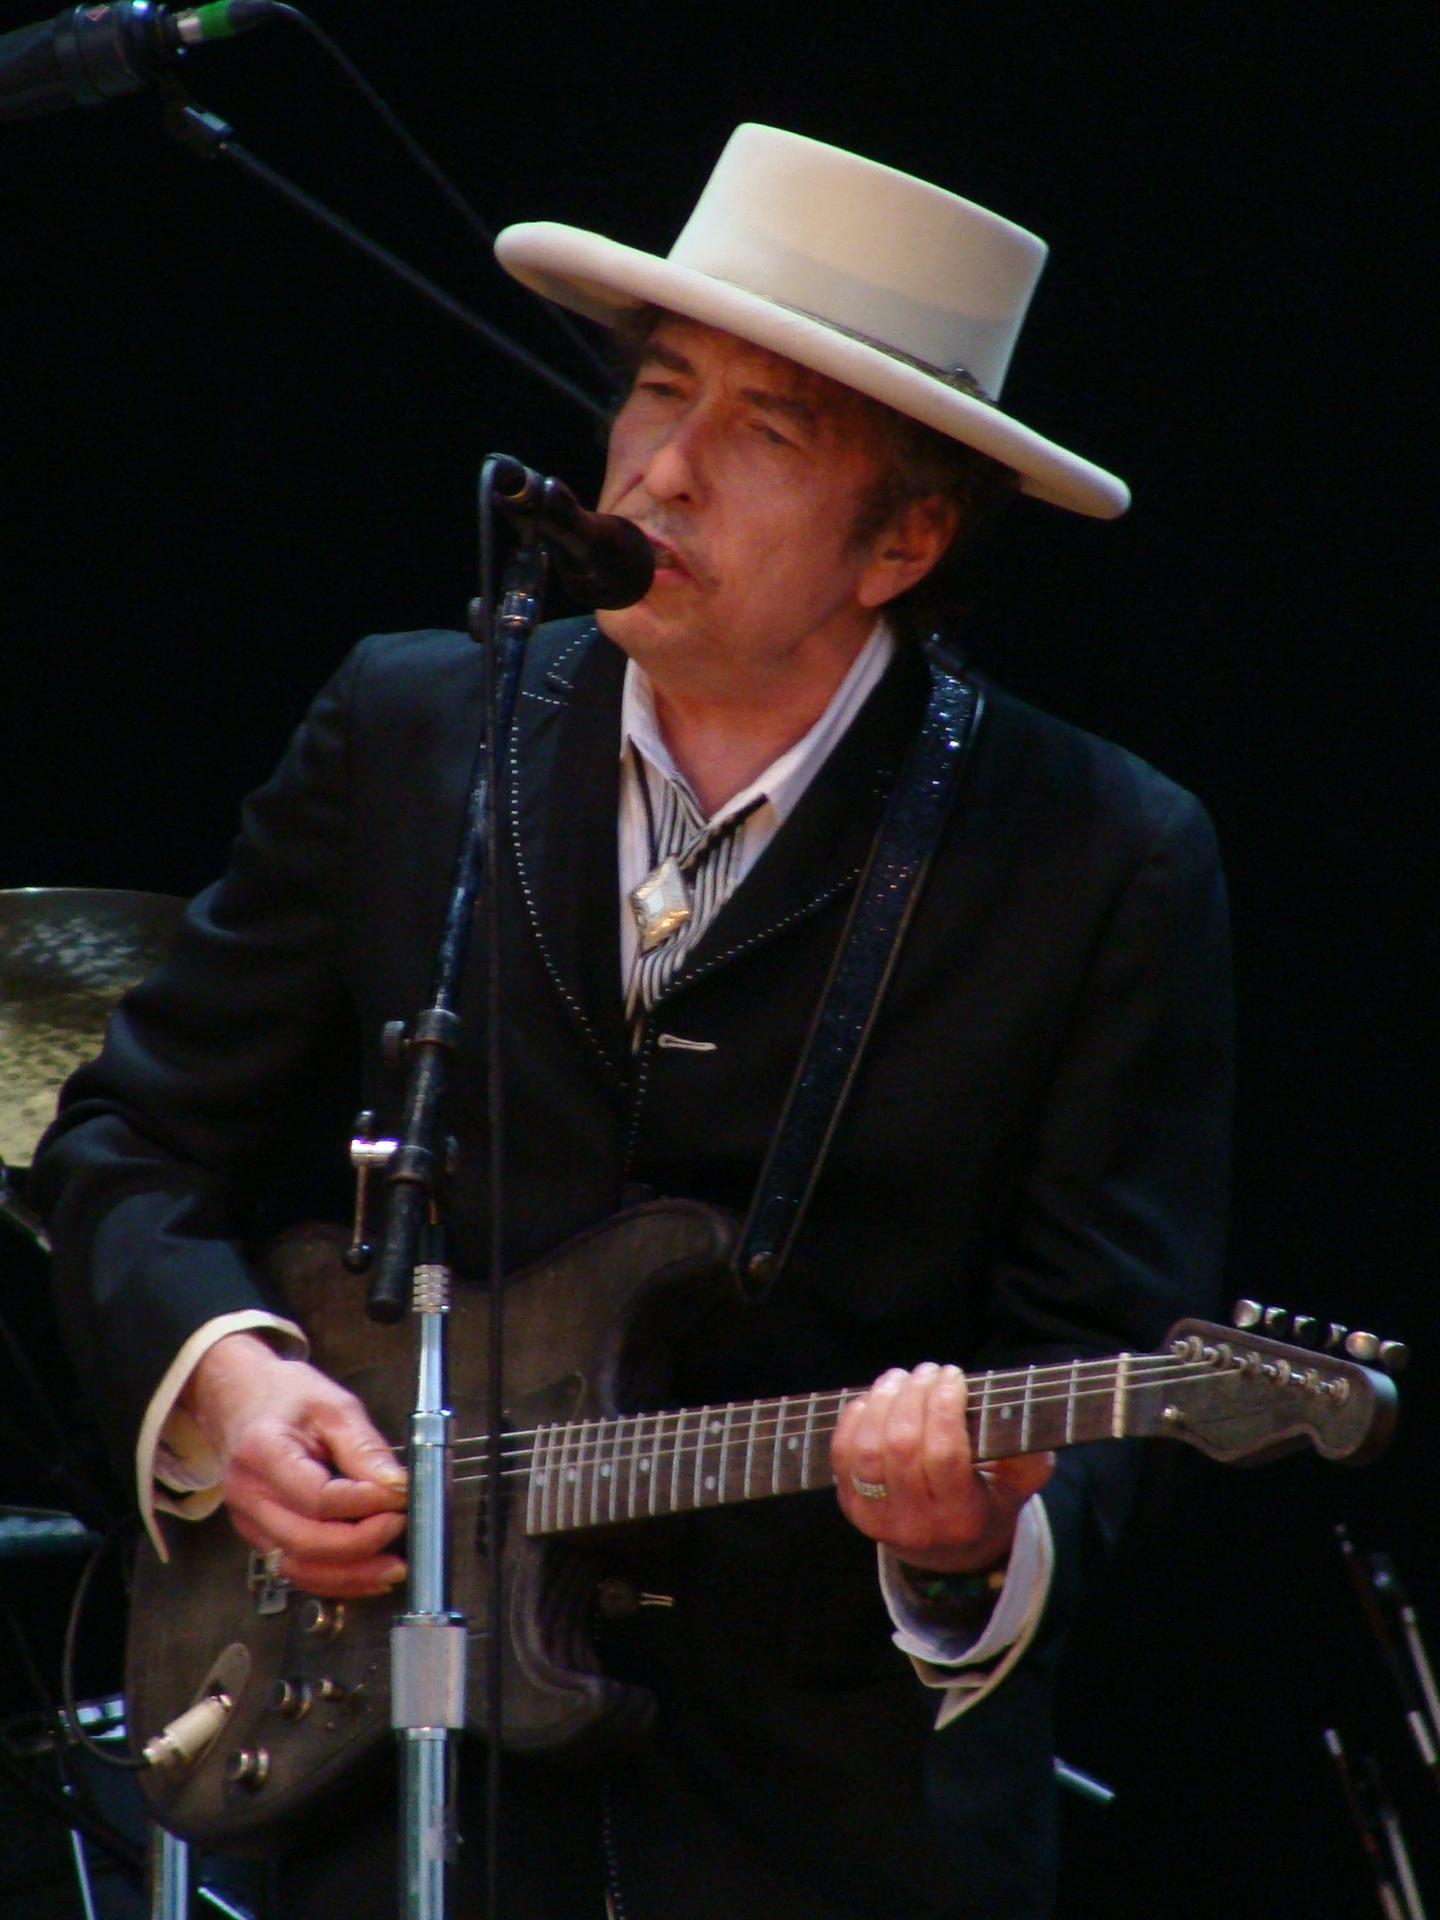 OPINION: Why Bob Dylan is still relevant today